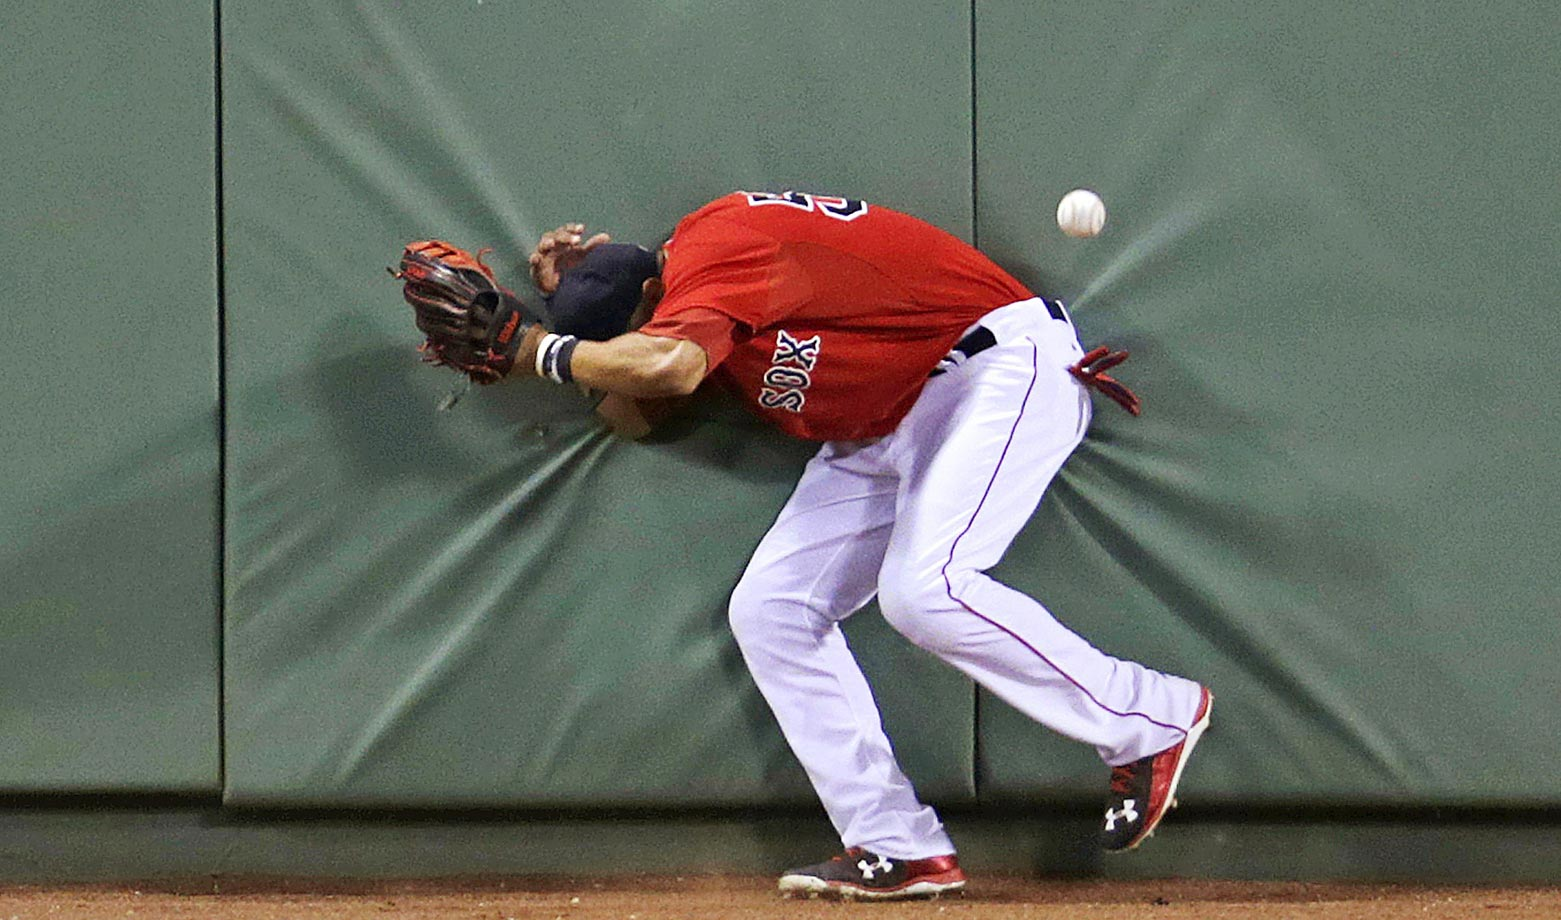 Mookie Betts of the Boston Red Sox hits the wall in a game against the Detroit Tigers.